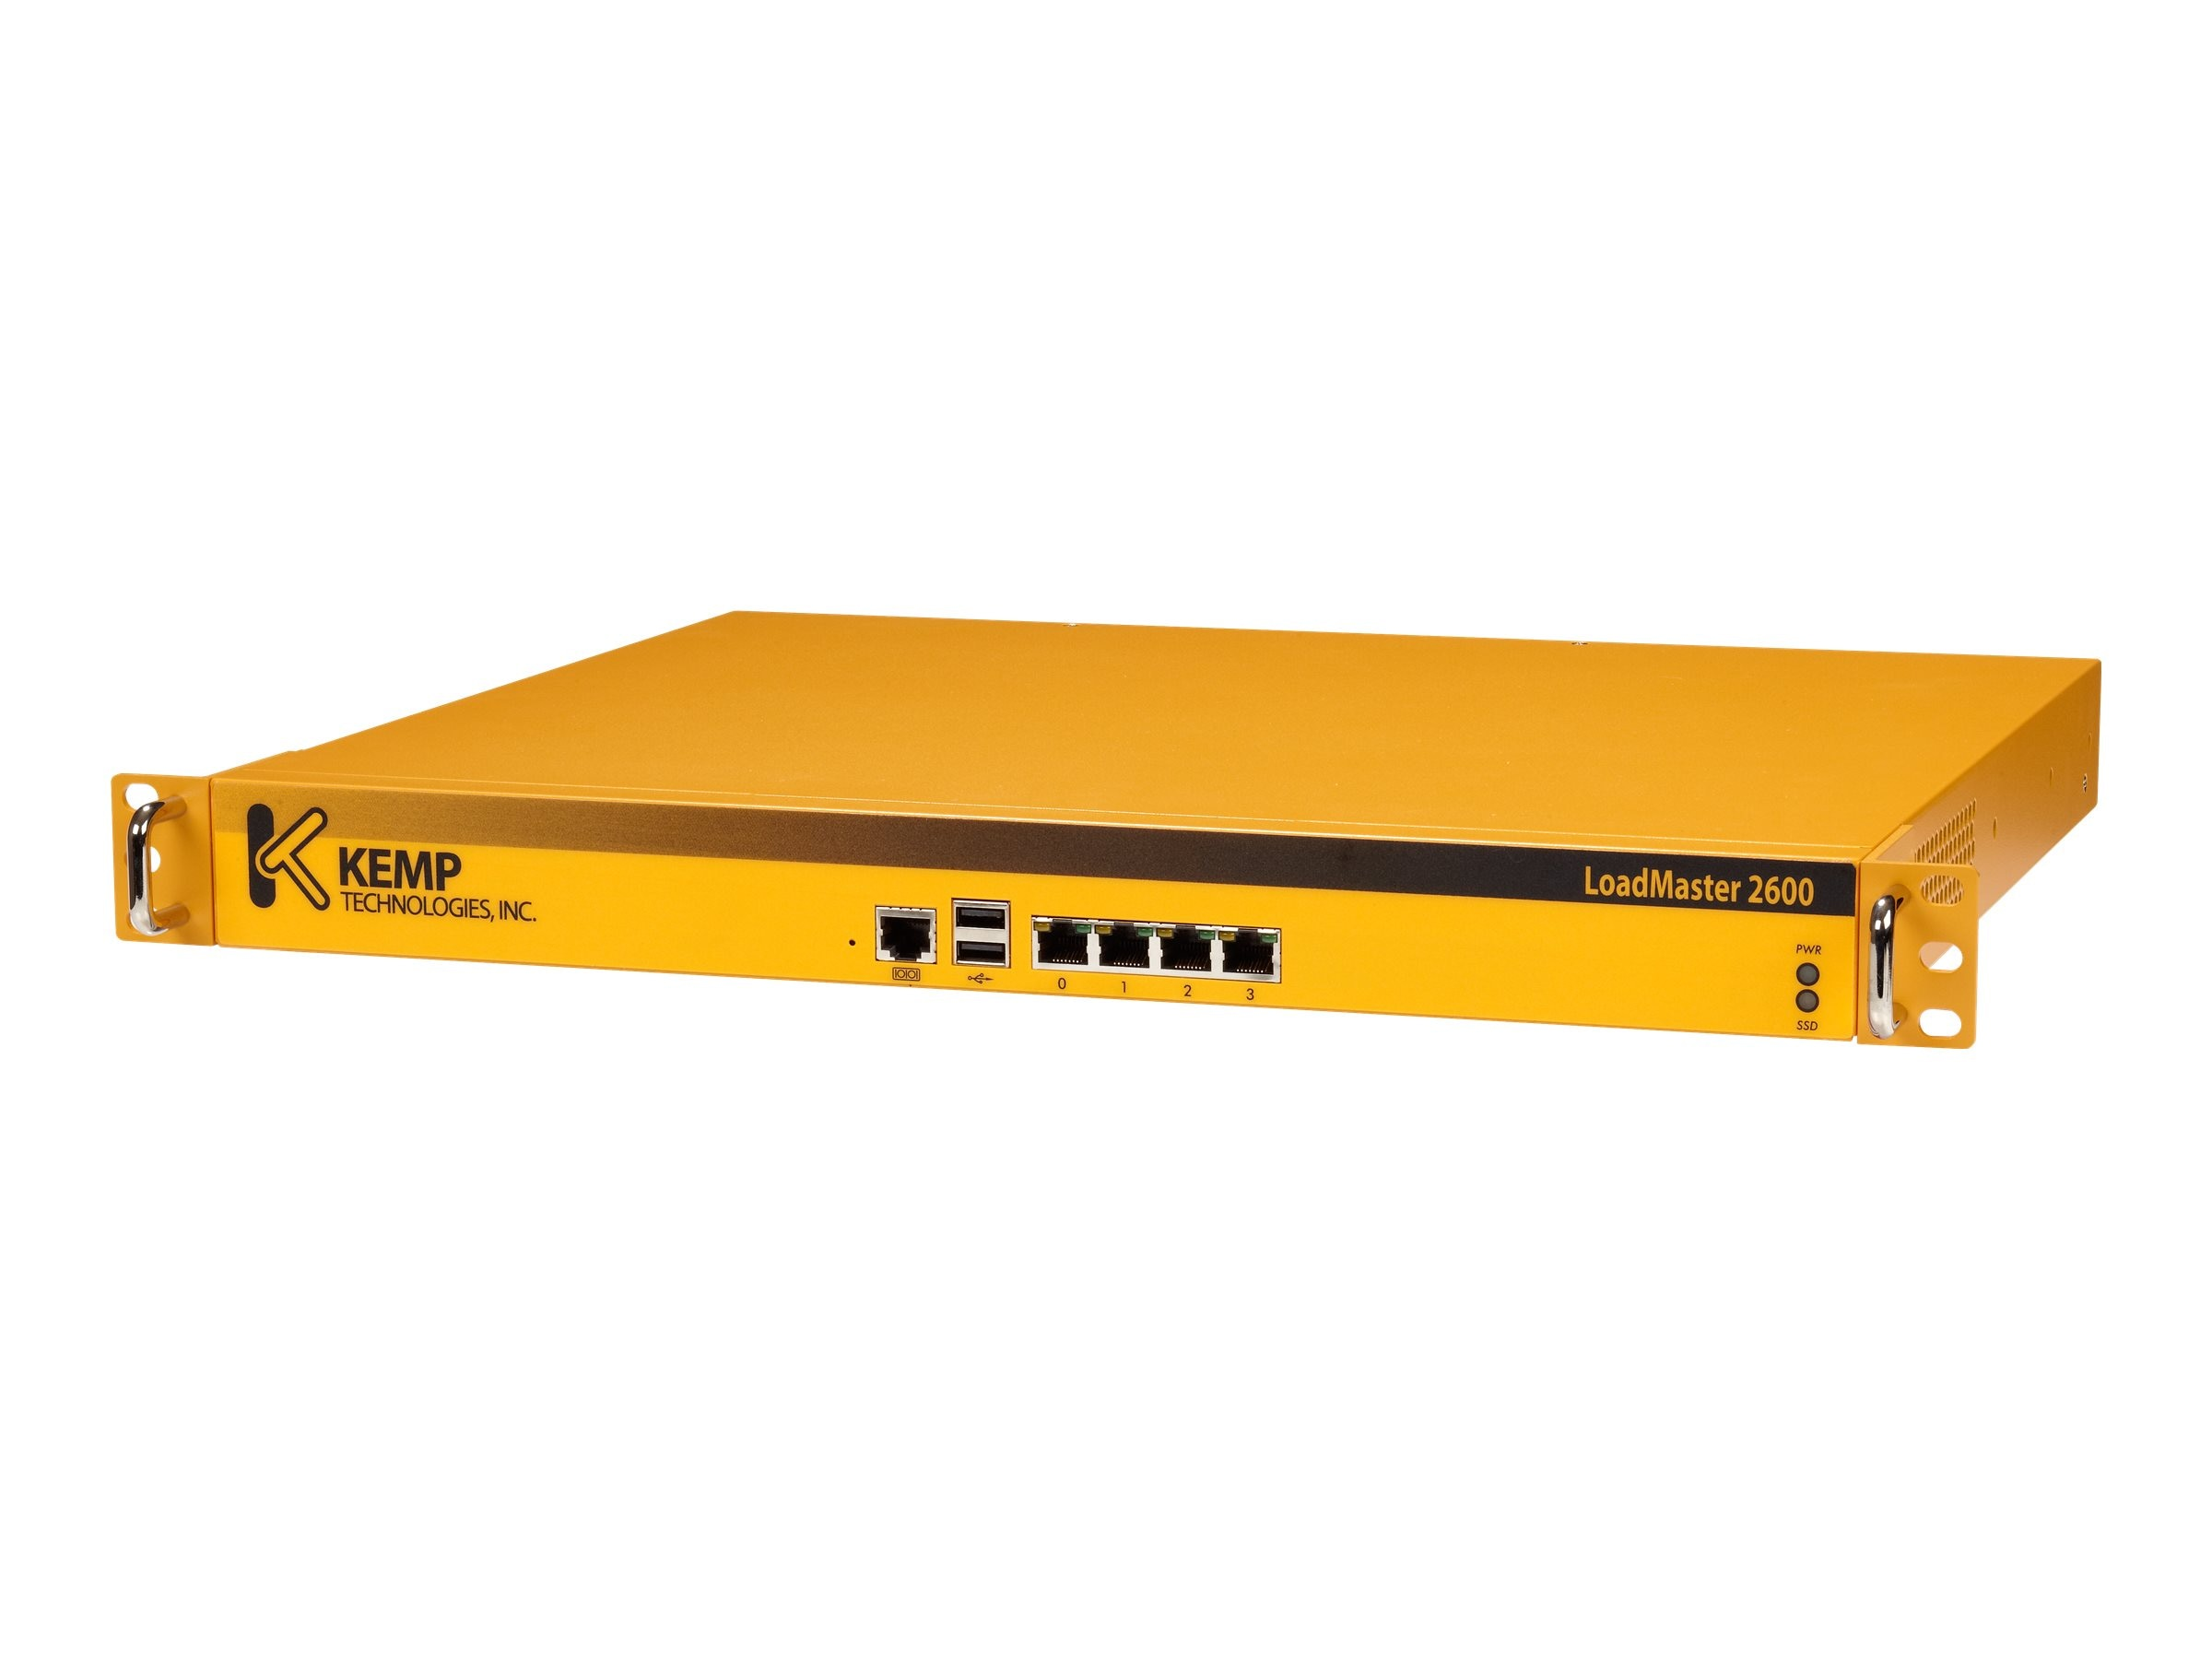 KEMP Loadmaster Load Balancer LM2600 Unit 3Yr Premium Support 24X7  Trade In